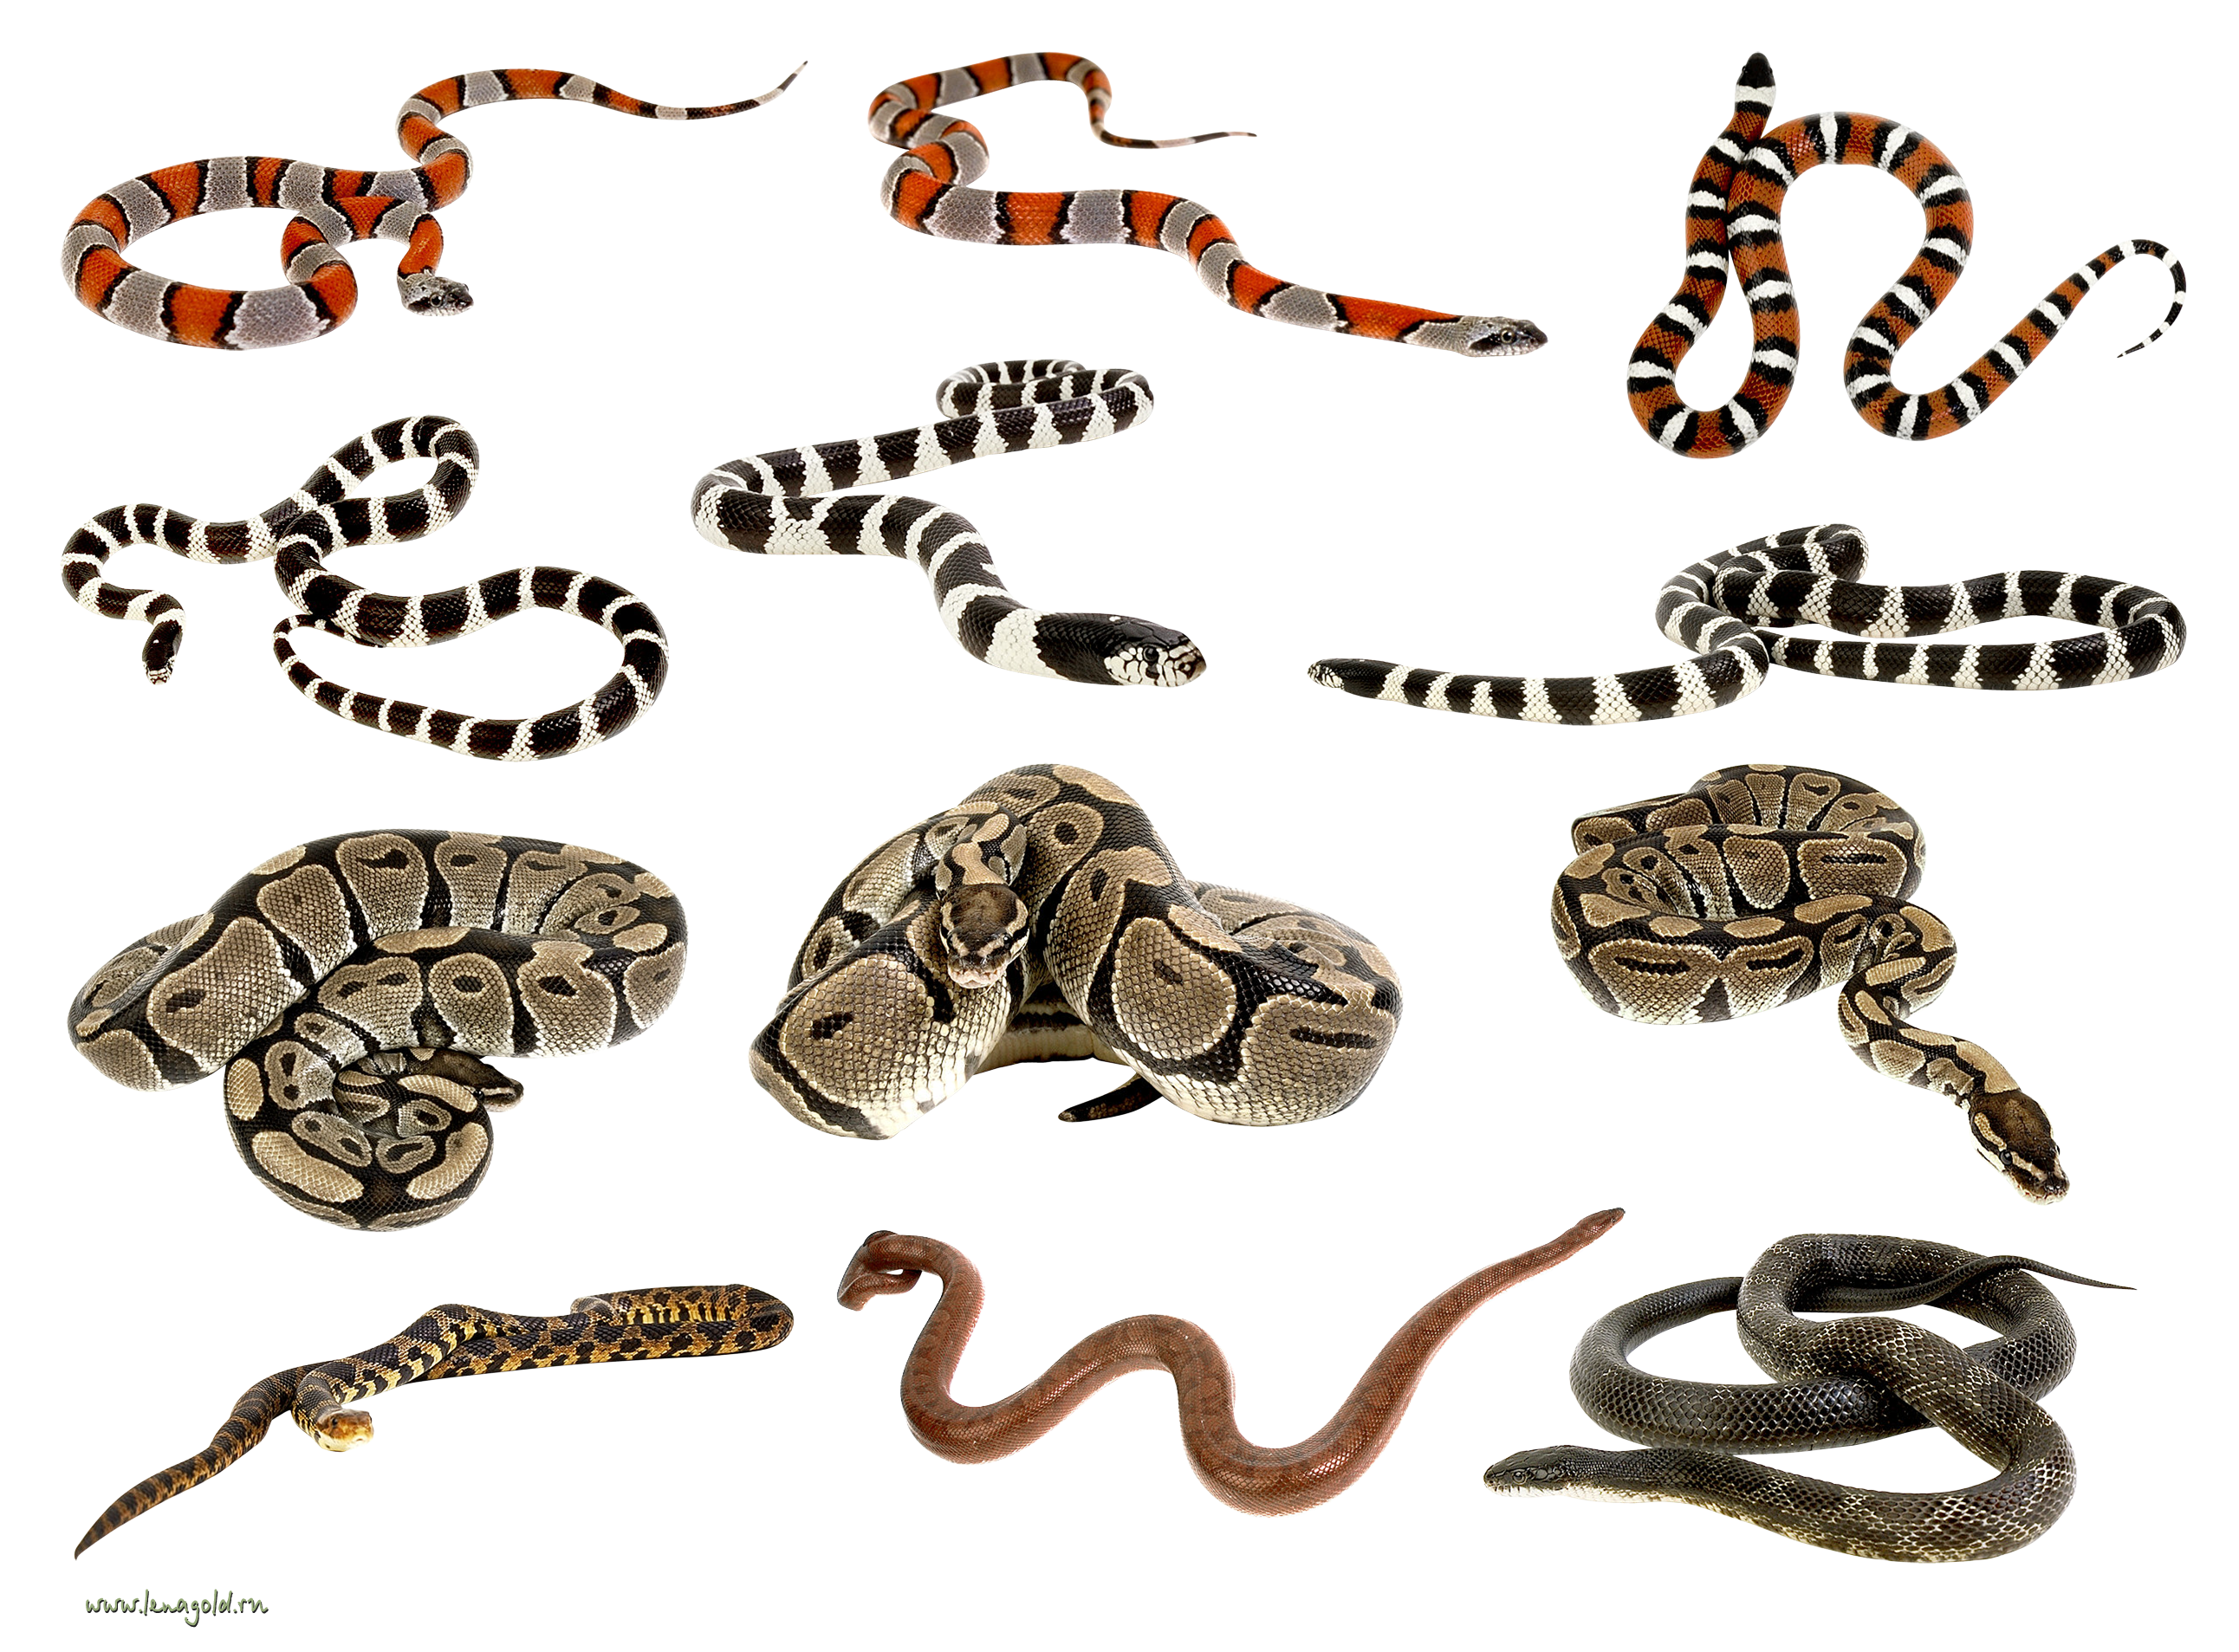 svg Snakes clipart. Png images